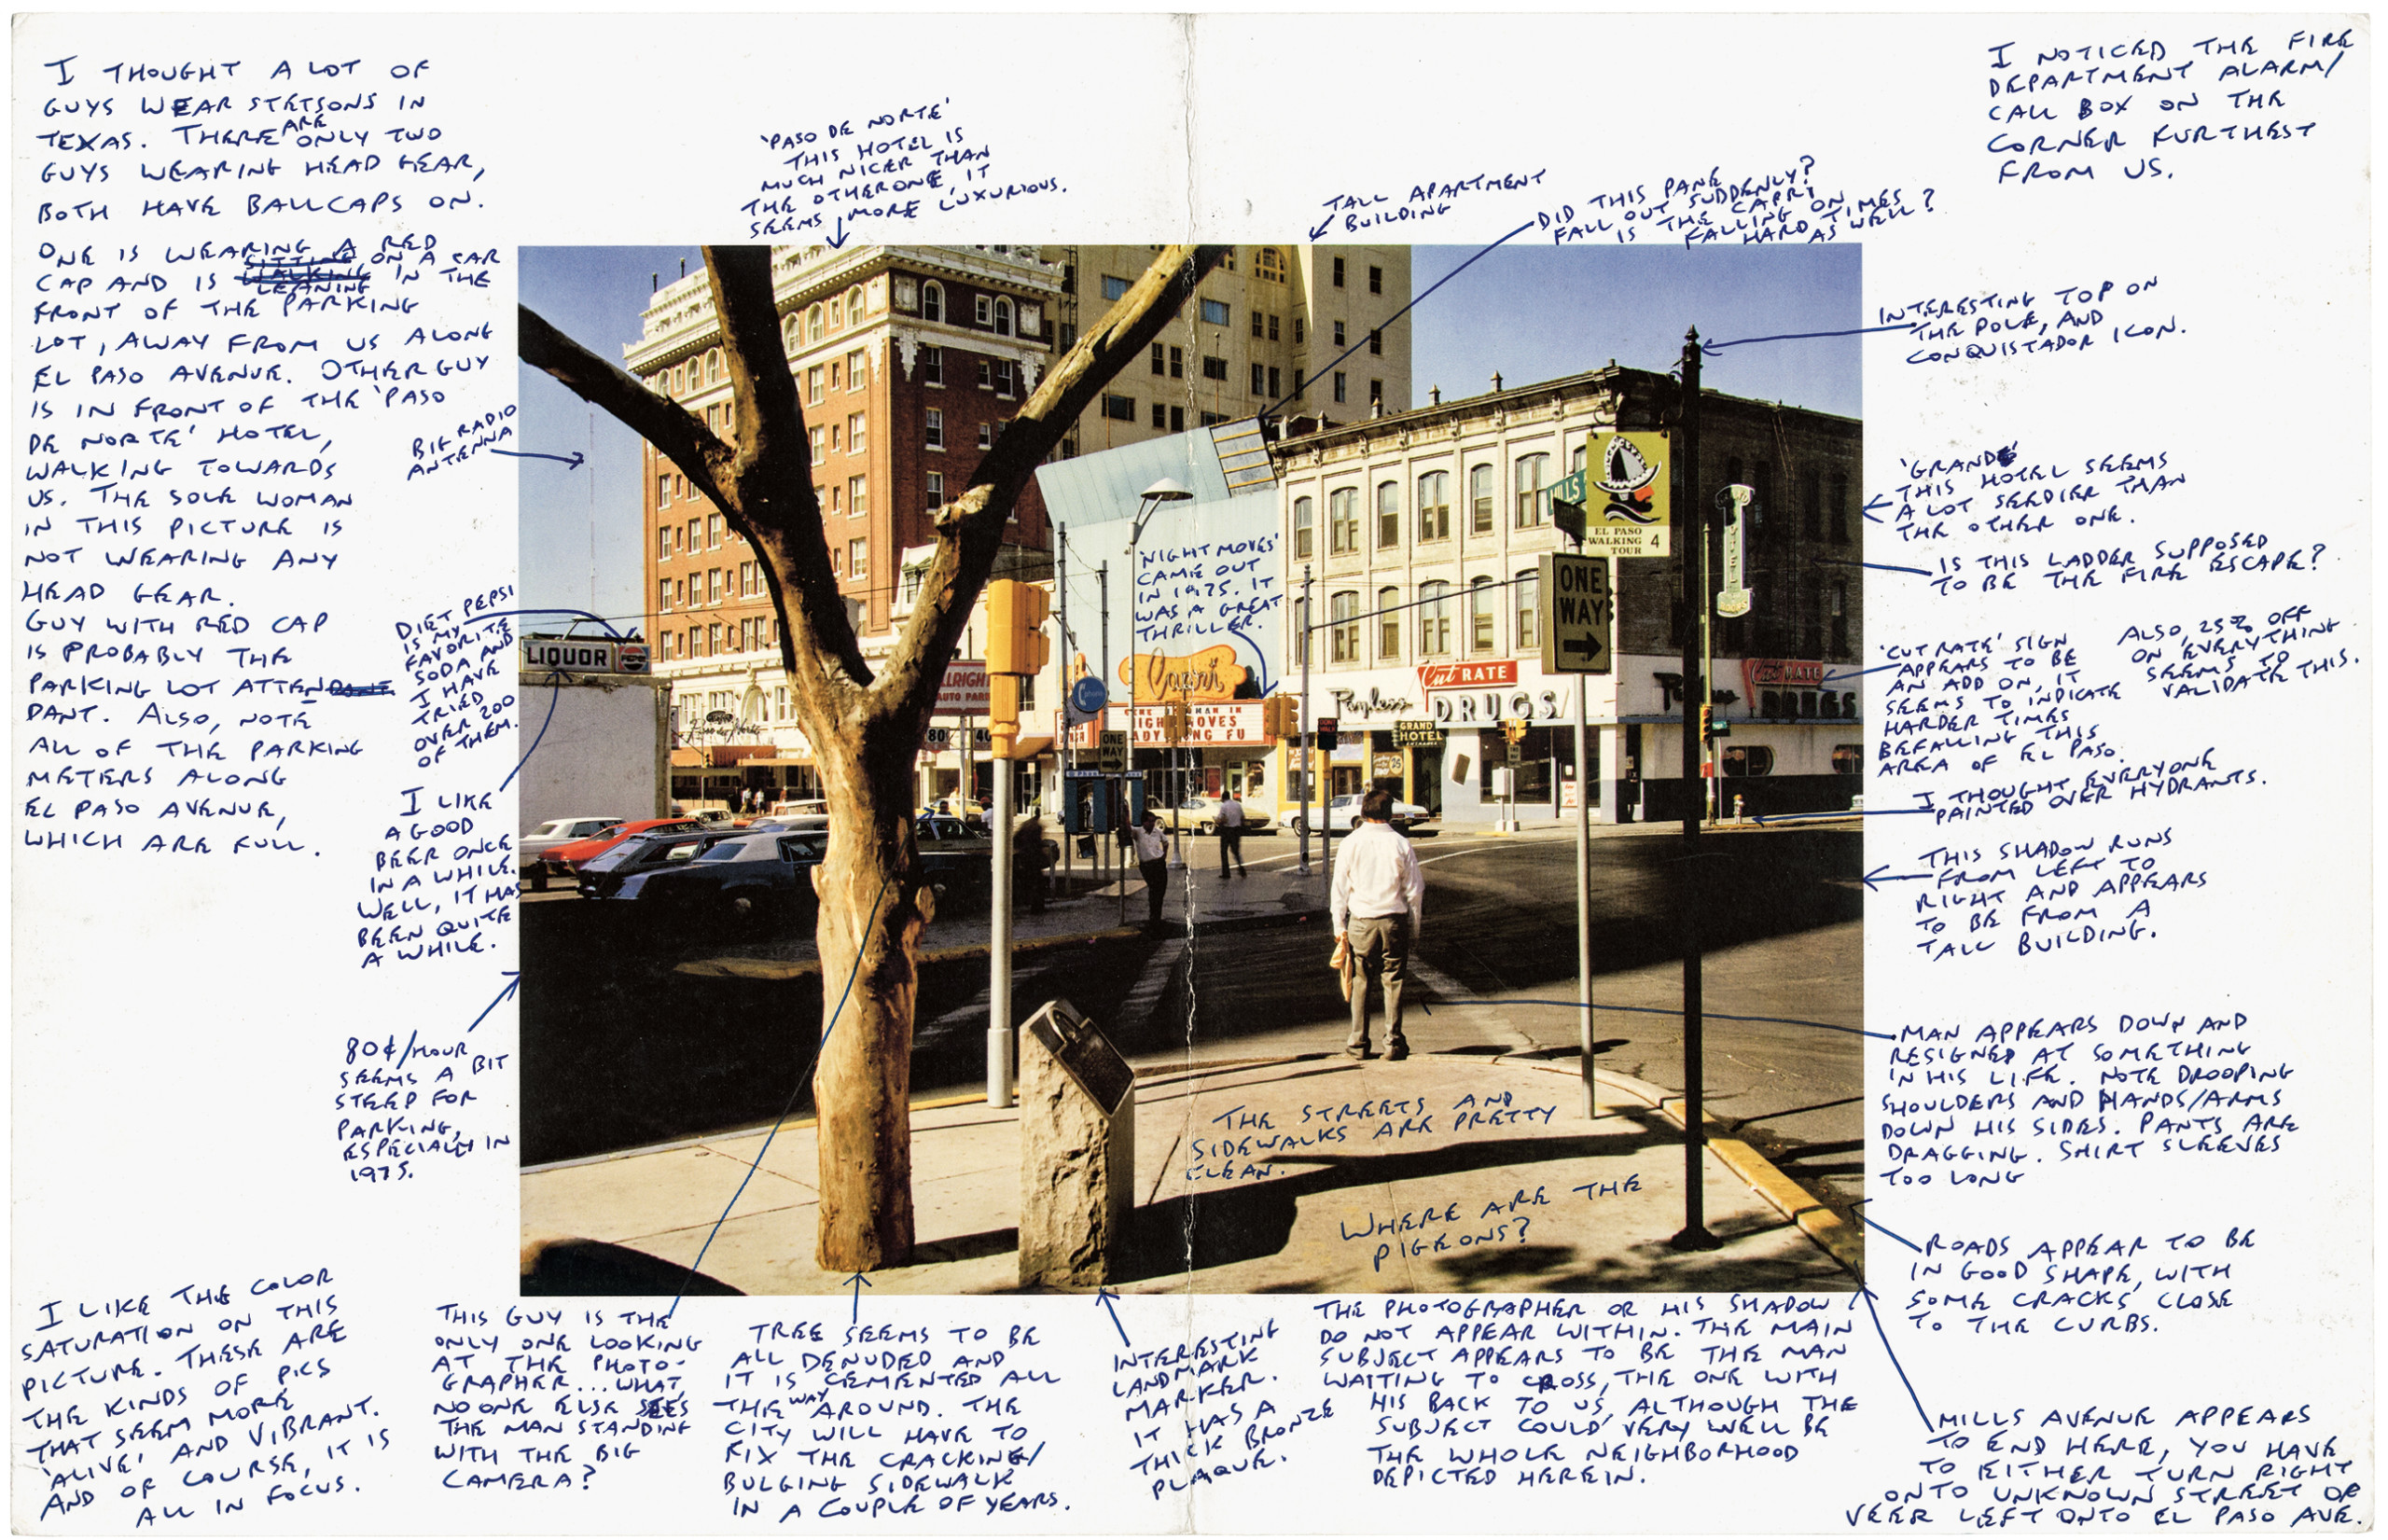 scan of photograph of street scene, surrounded by handwritten observations and notes